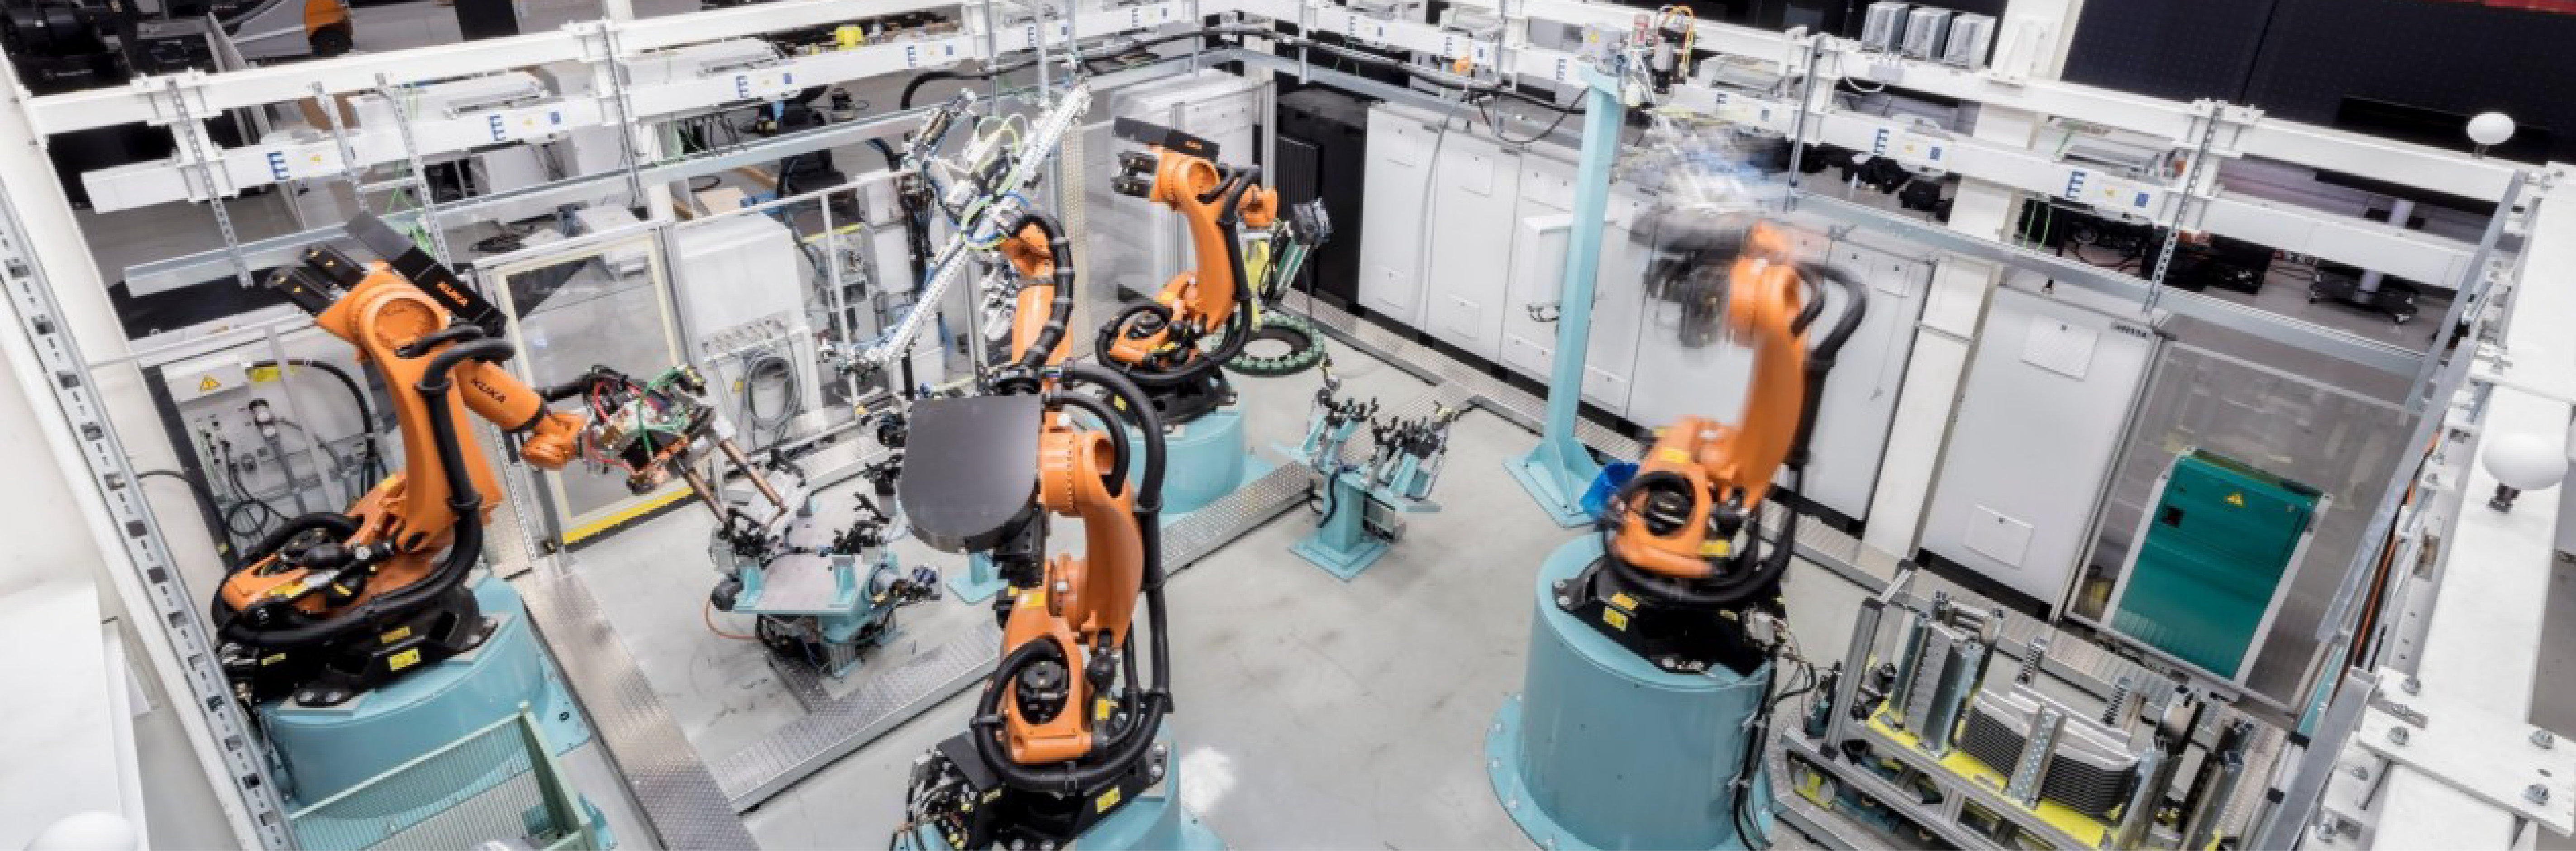 XiLab provides high-level design and engineering methods for Industry 4.0 and intelligent manufacturing